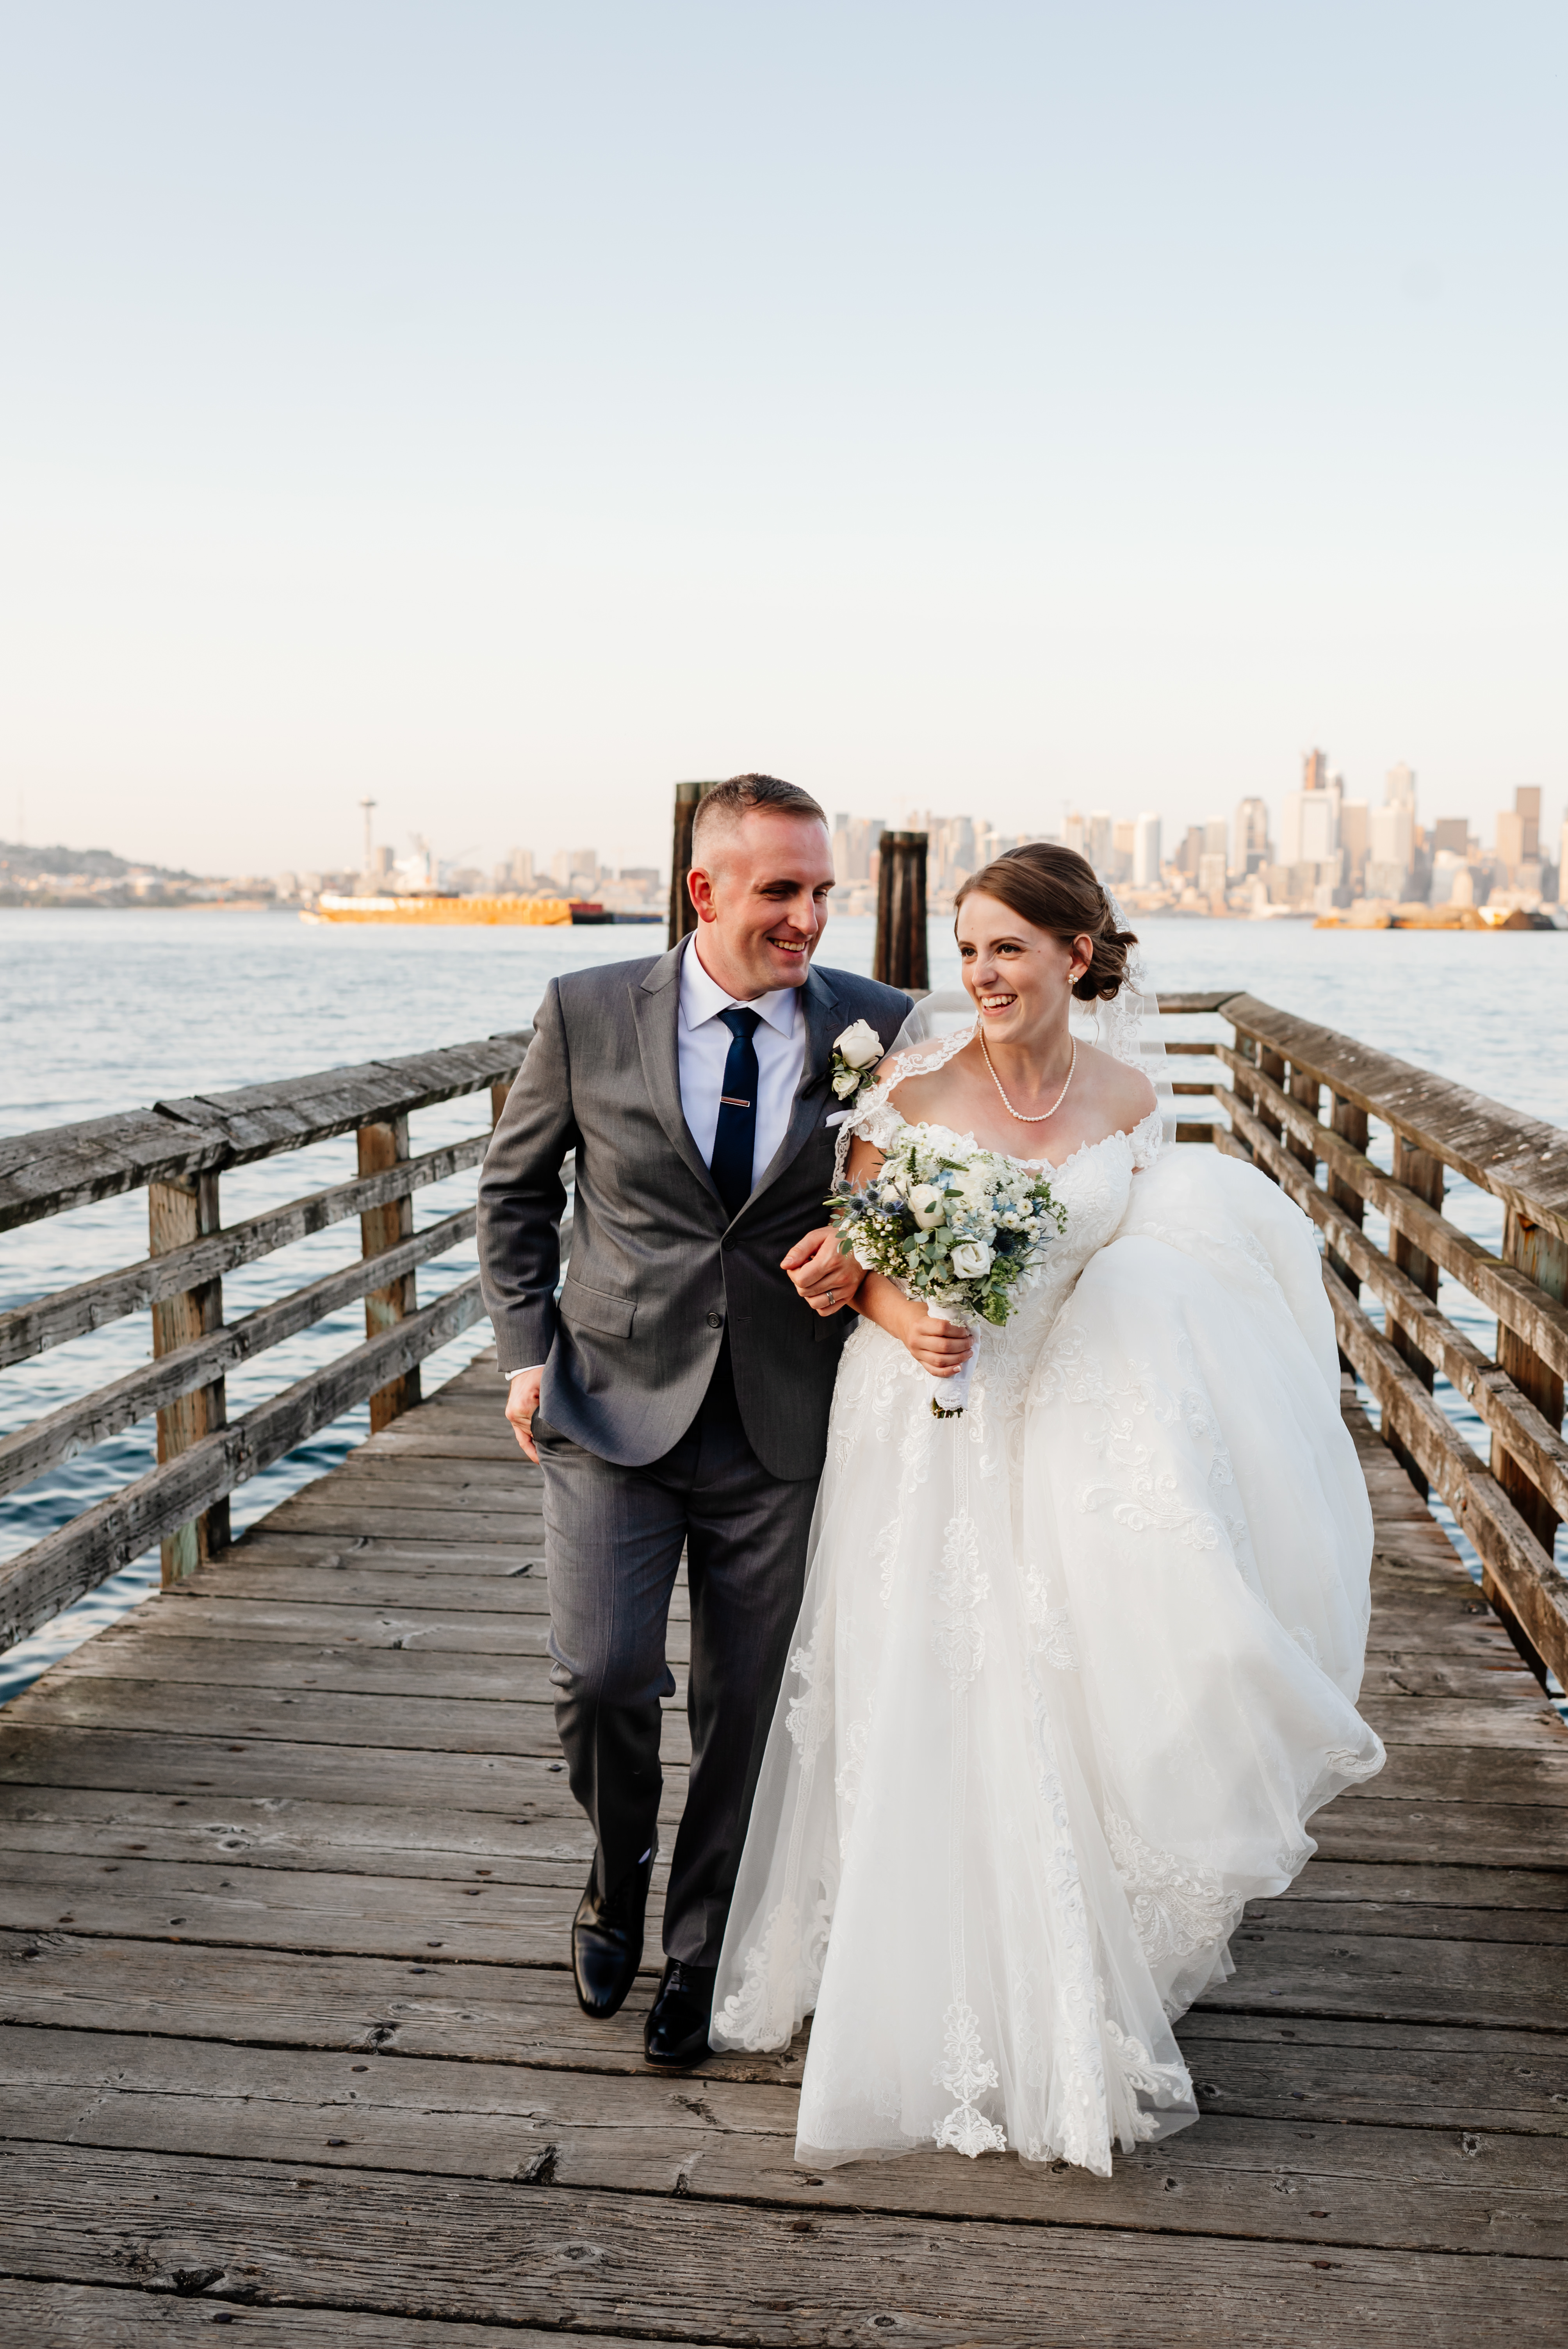 Lindsay in long white wedding dress holding bouquet, linked arms with husband in gray suit smiling on dock overlooking Seattle.